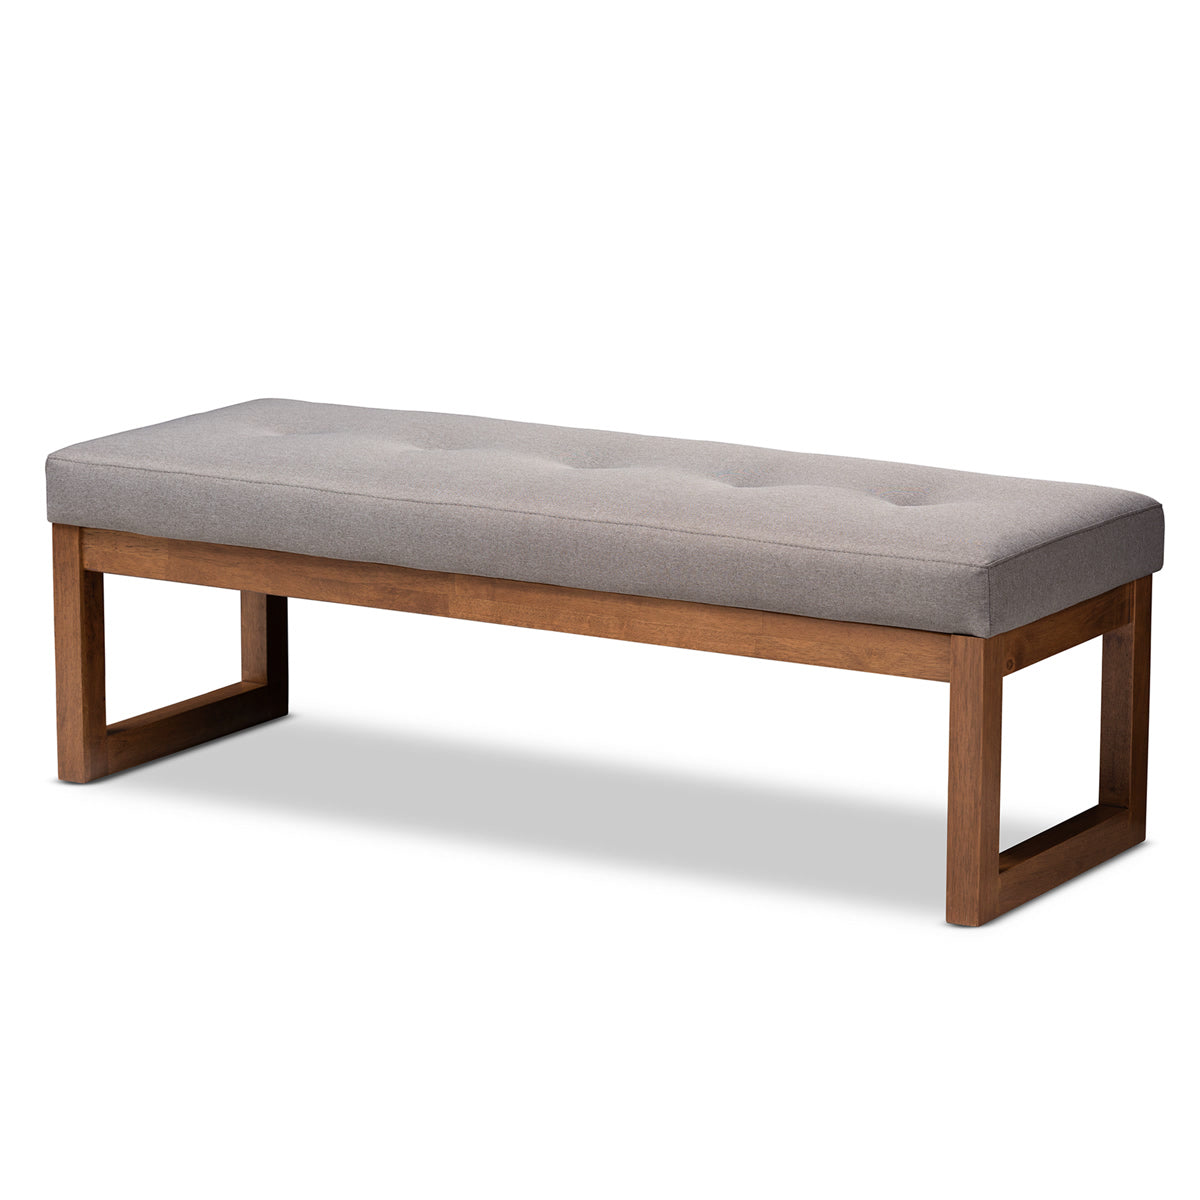 Baxton Studio Caramay Modern and Contemporary Grey Fabric Upholstered Walnut Brown Finished Wood Bench Baxton Studio-benches-Minimal And Modern - 1